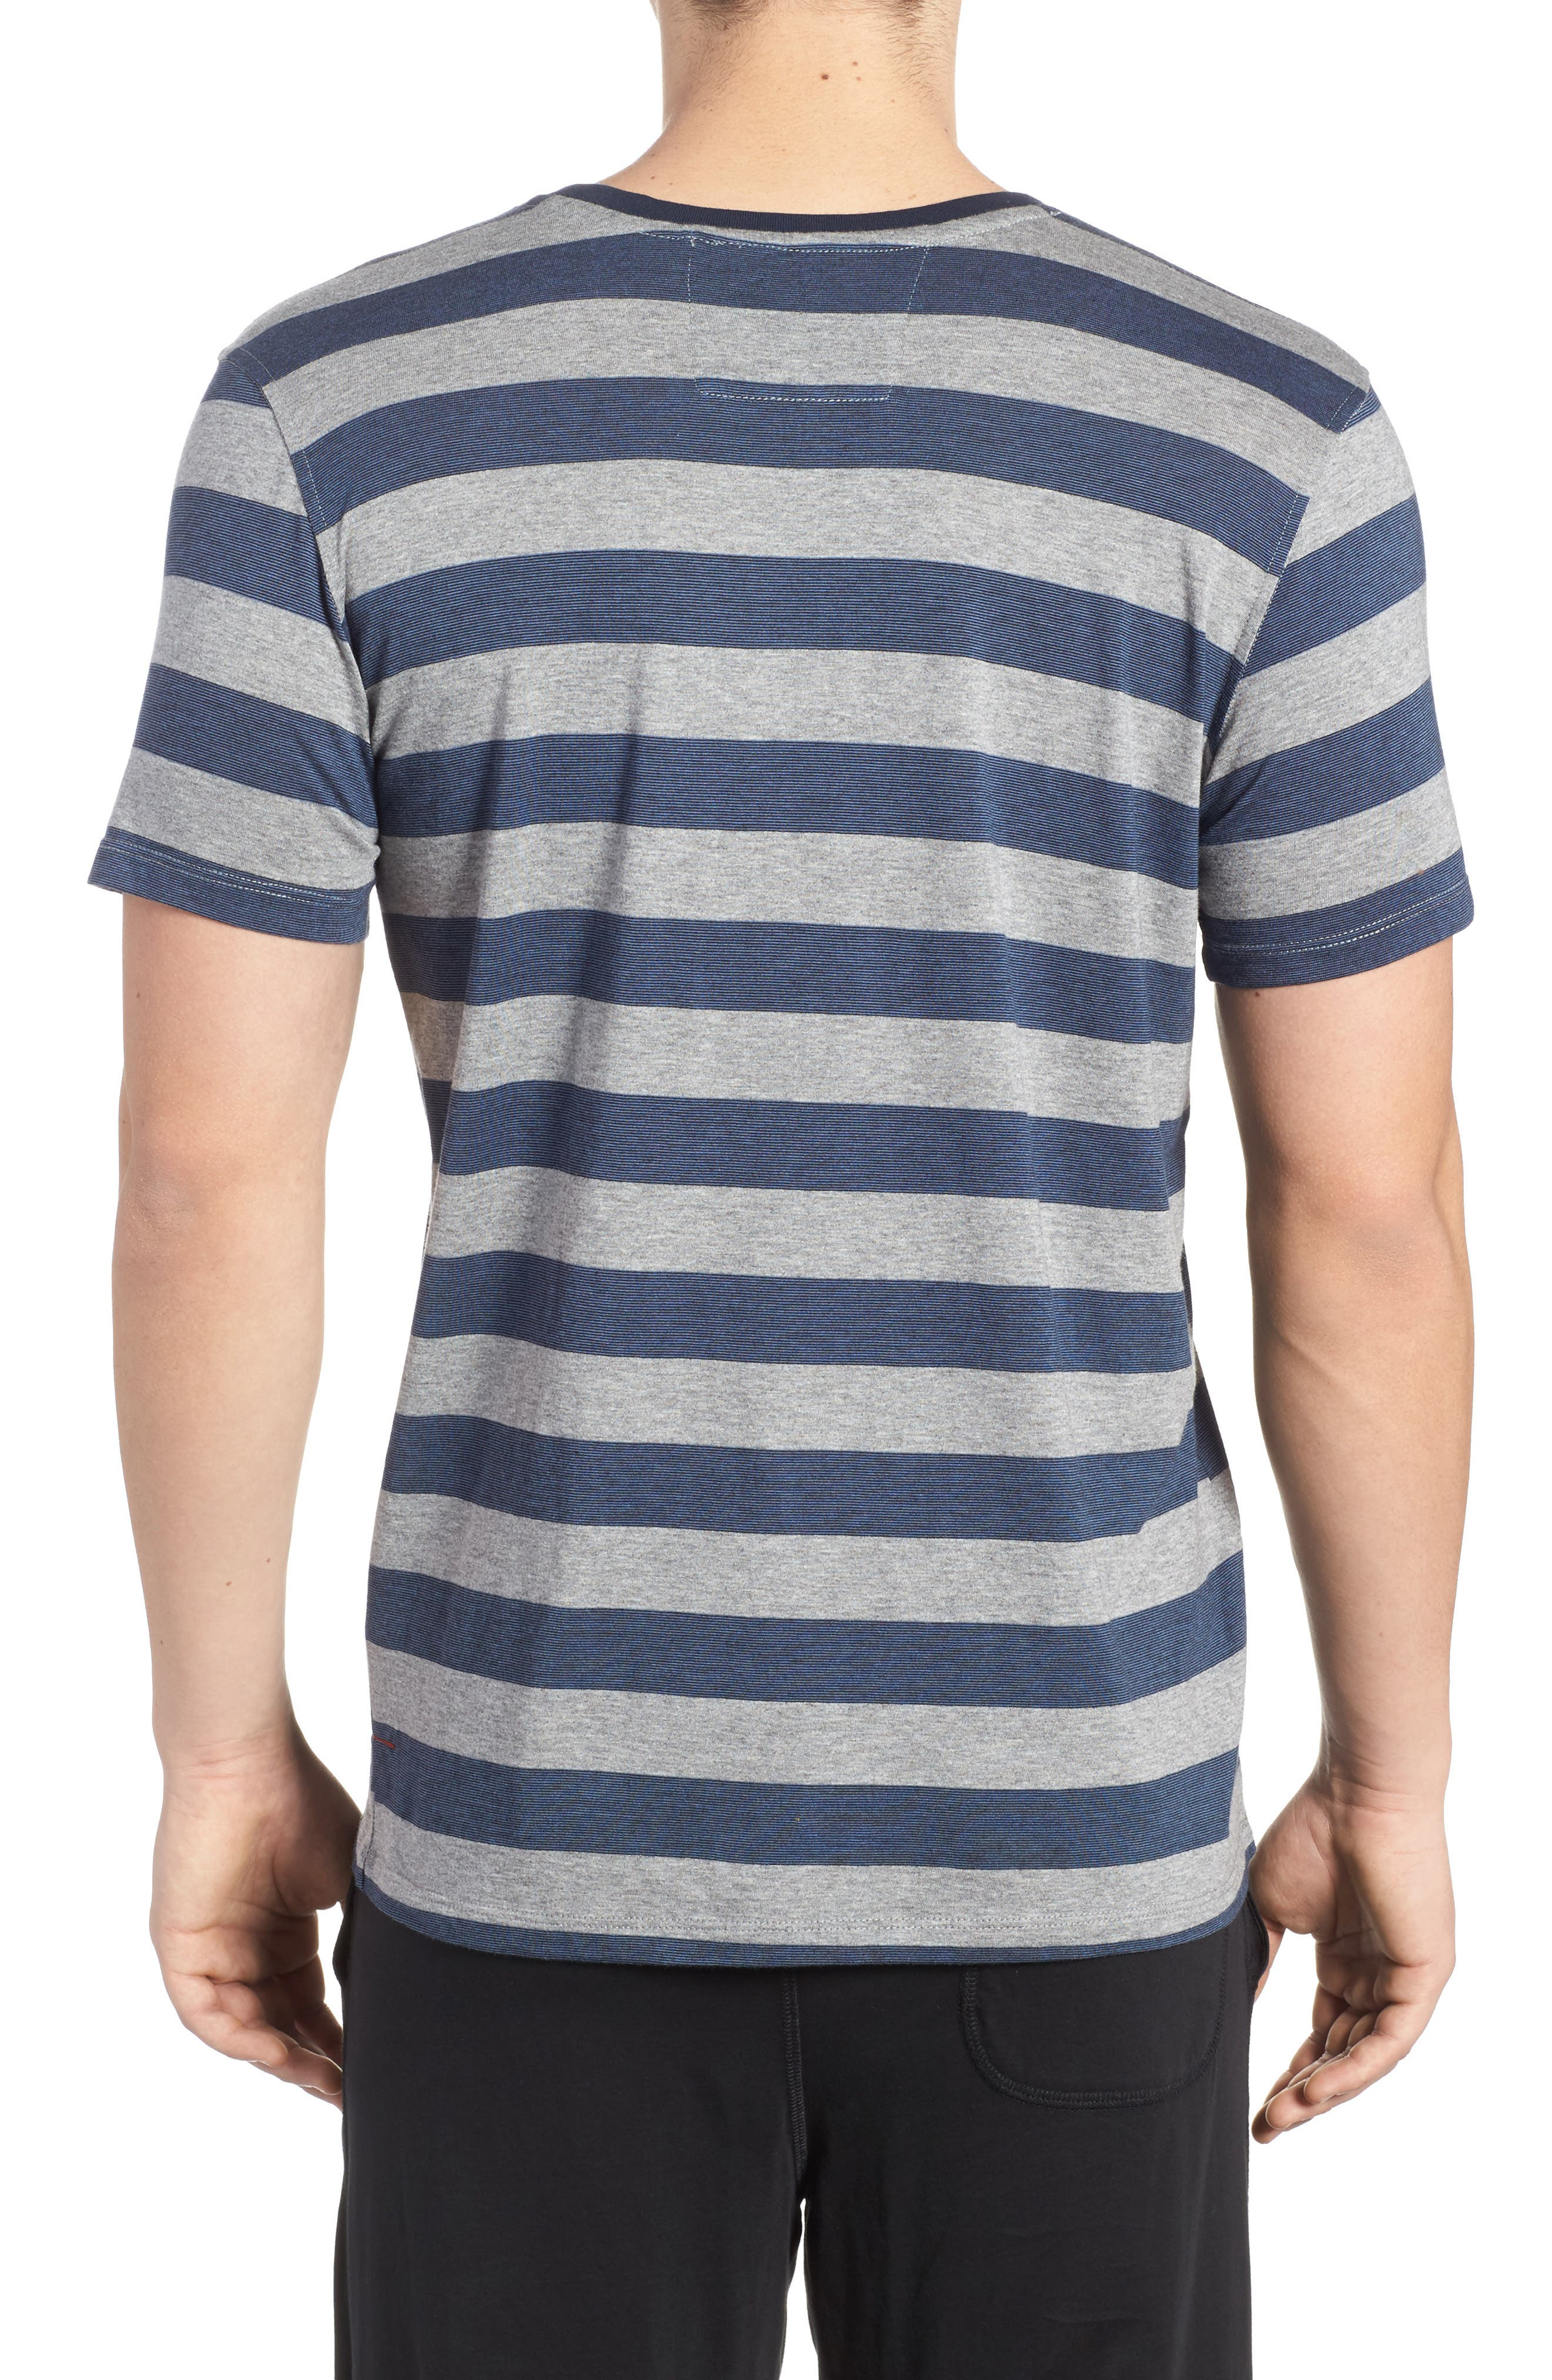 Stripe Pima Cotton & Modal Crewneck T-Shirt,                             Alternate thumbnail 2, color,                             Grey/ Blue